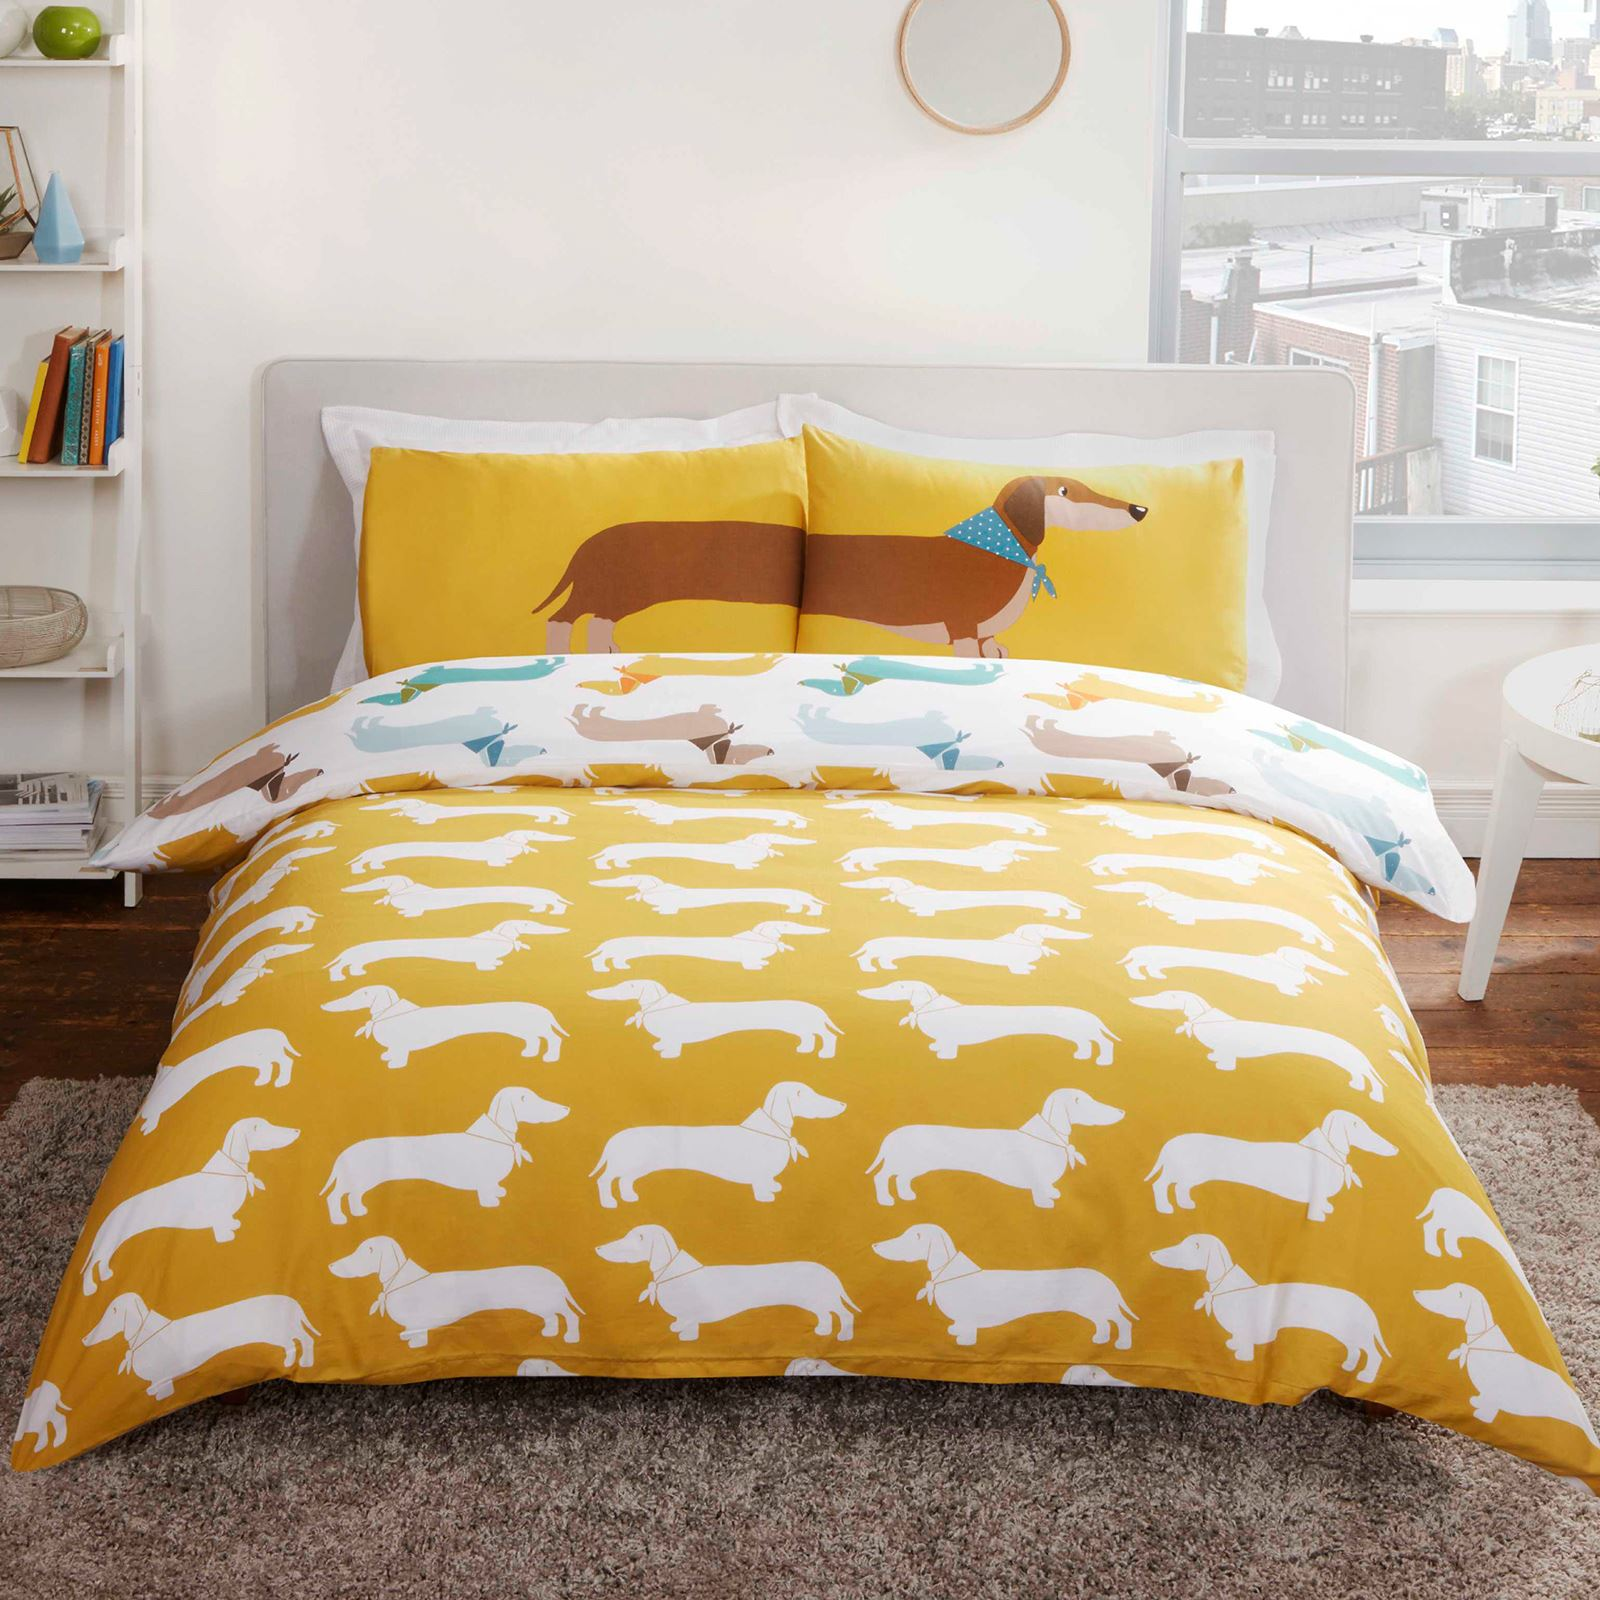 Sausage Dog Duvet Cover Set Bedding Kids Adults